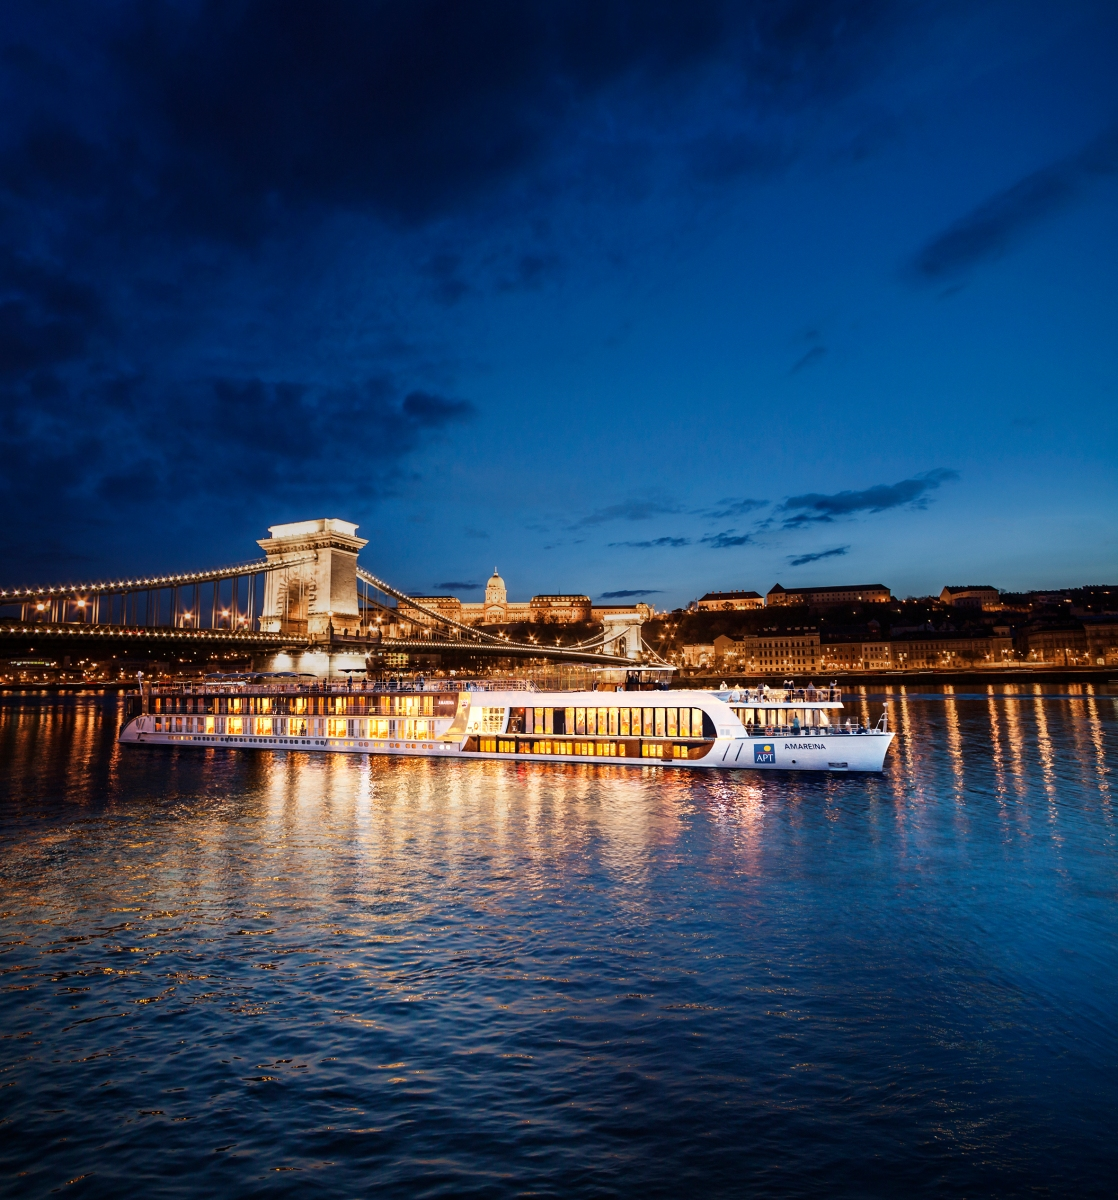 5 Star Luxury River Cruises Through Eurooe: APT And AmaWaterways' Ships Take Top Ten Spots In Travel